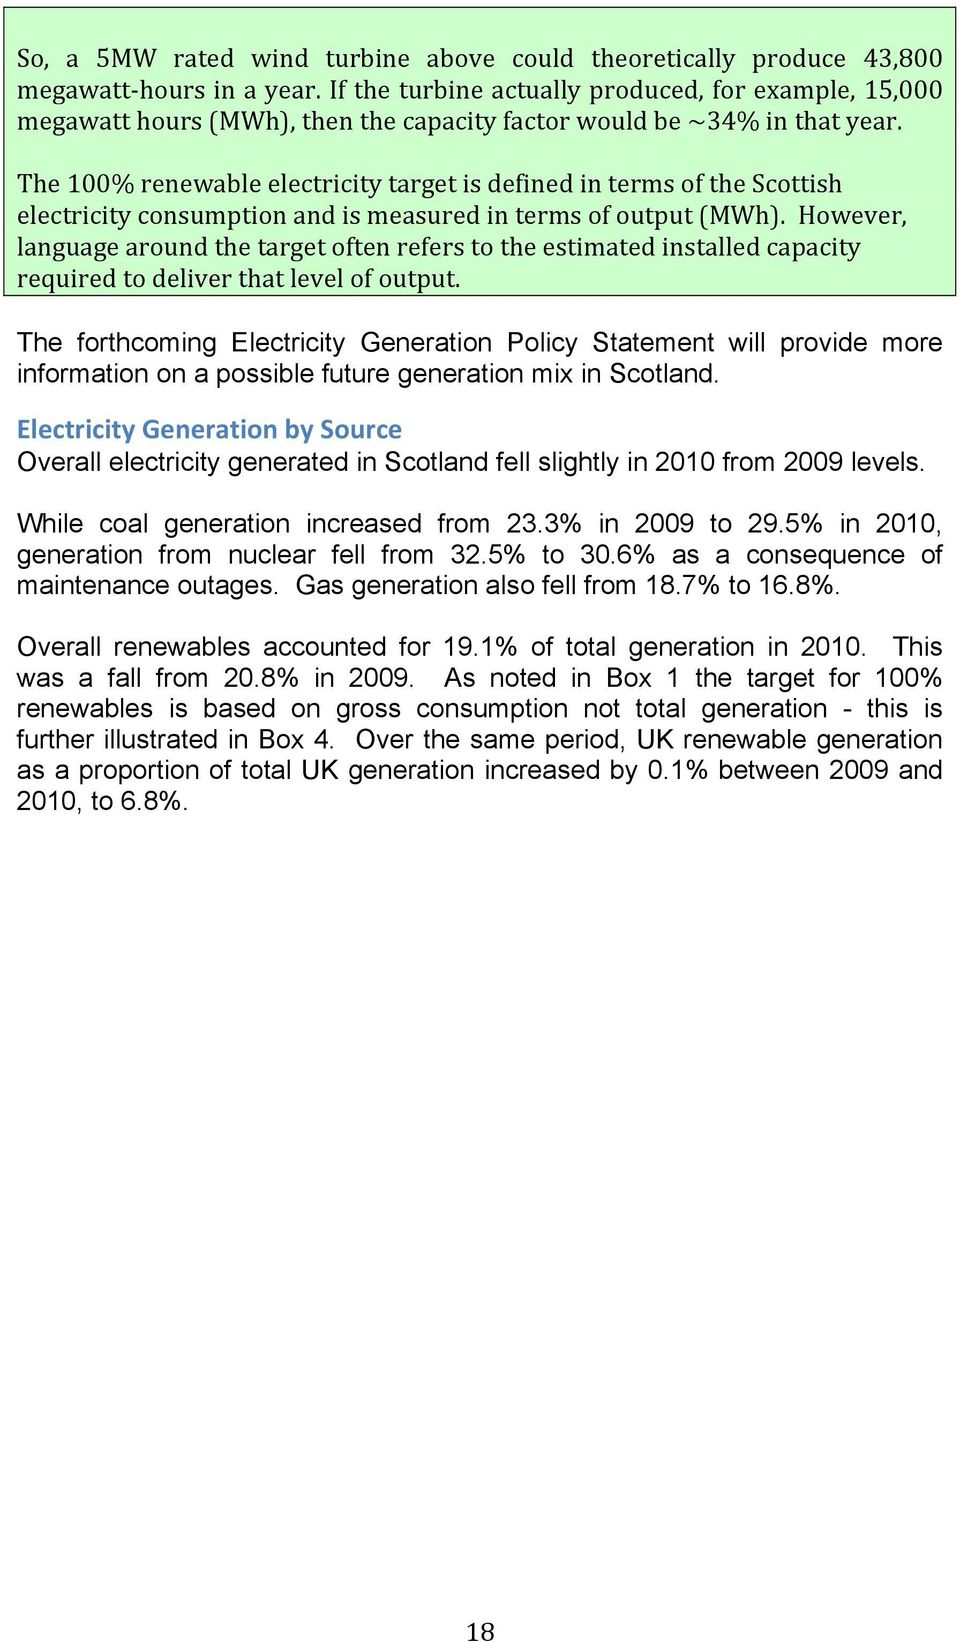 The 100% renewable electricity target is defined in terms of the Scottish electricity consumption and is measured in terms of output (MWh).